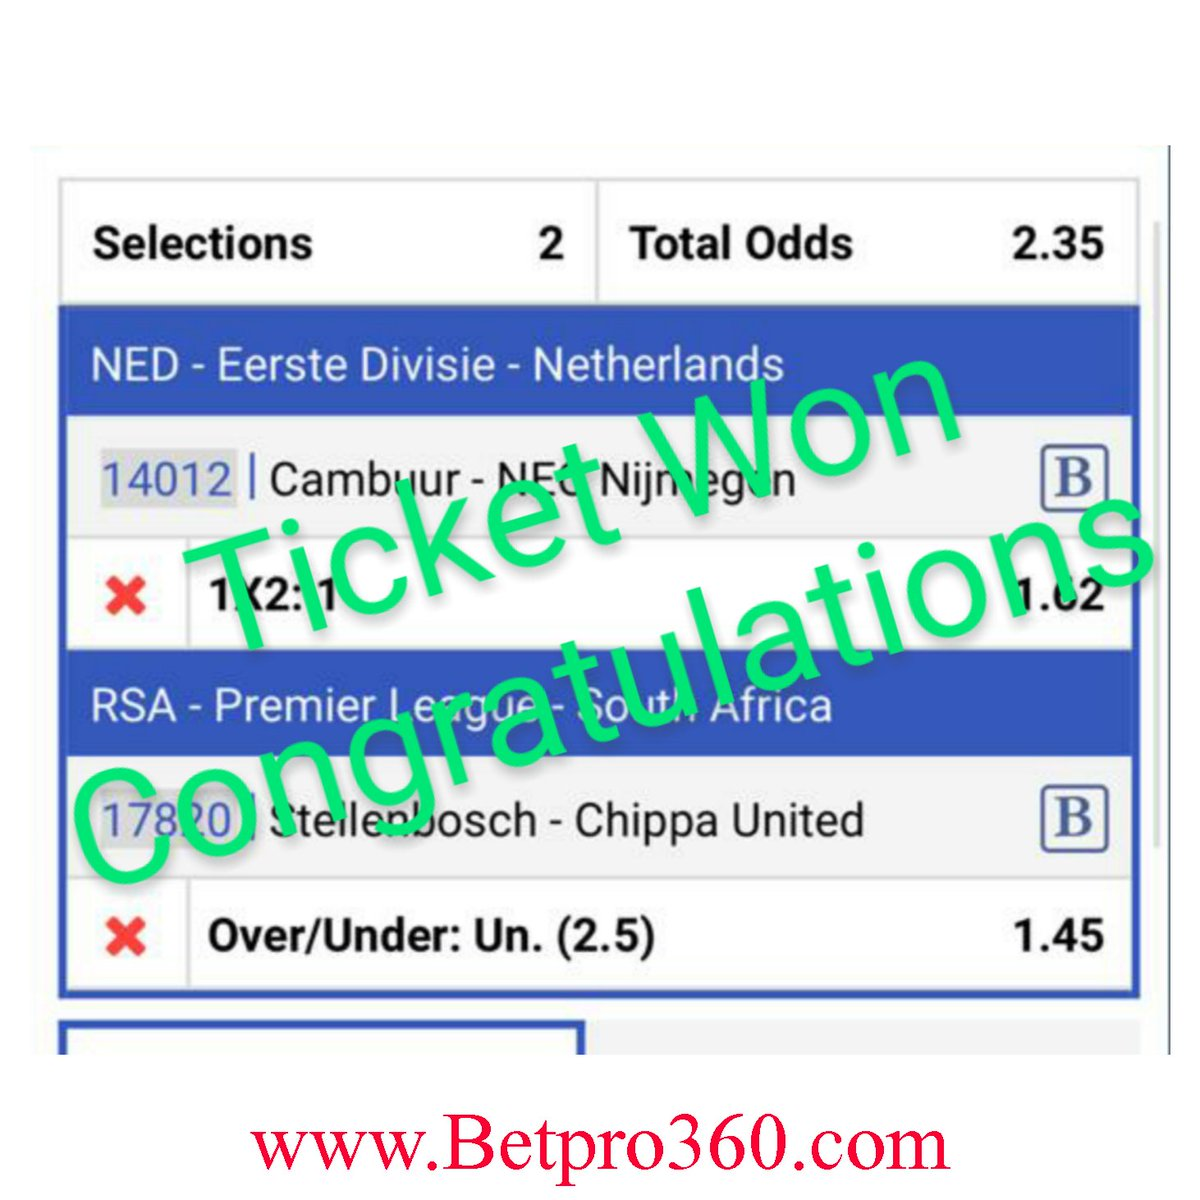 Betpro360 On Twitter Boom Winning Alert Yesterday S 3rd Set Result Put On Your Notification Dont Miss Out On Our Daily Free Odds Follow Us For Free Odds Daily Freetips Betting Tipster Bettingtips